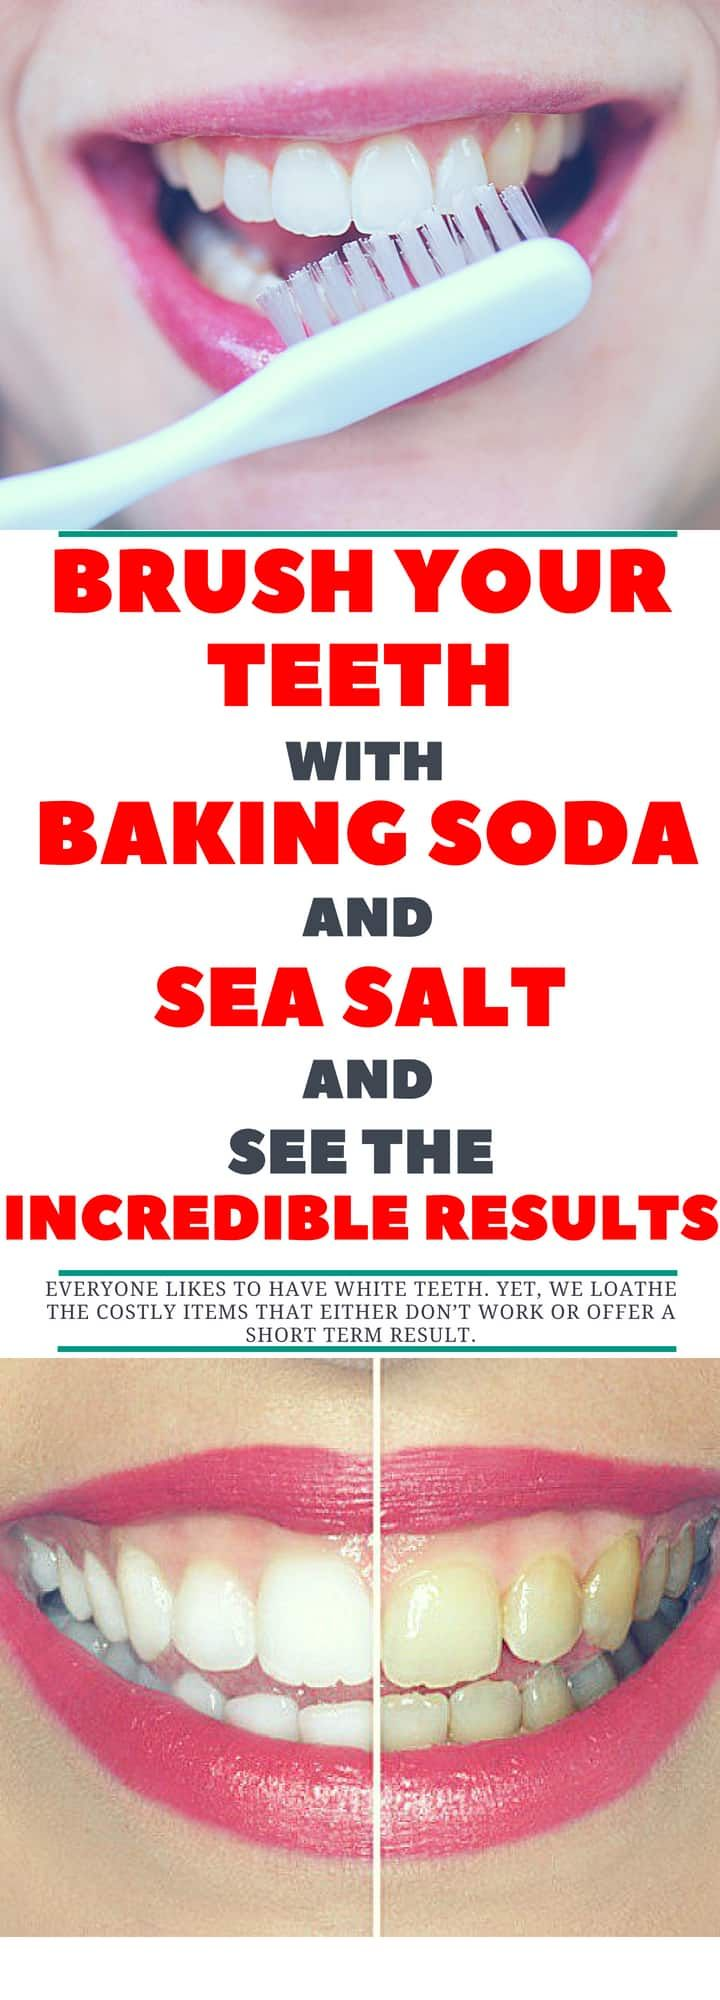 Brush Your Teeth With Baking Soda And Sea Salt And See The